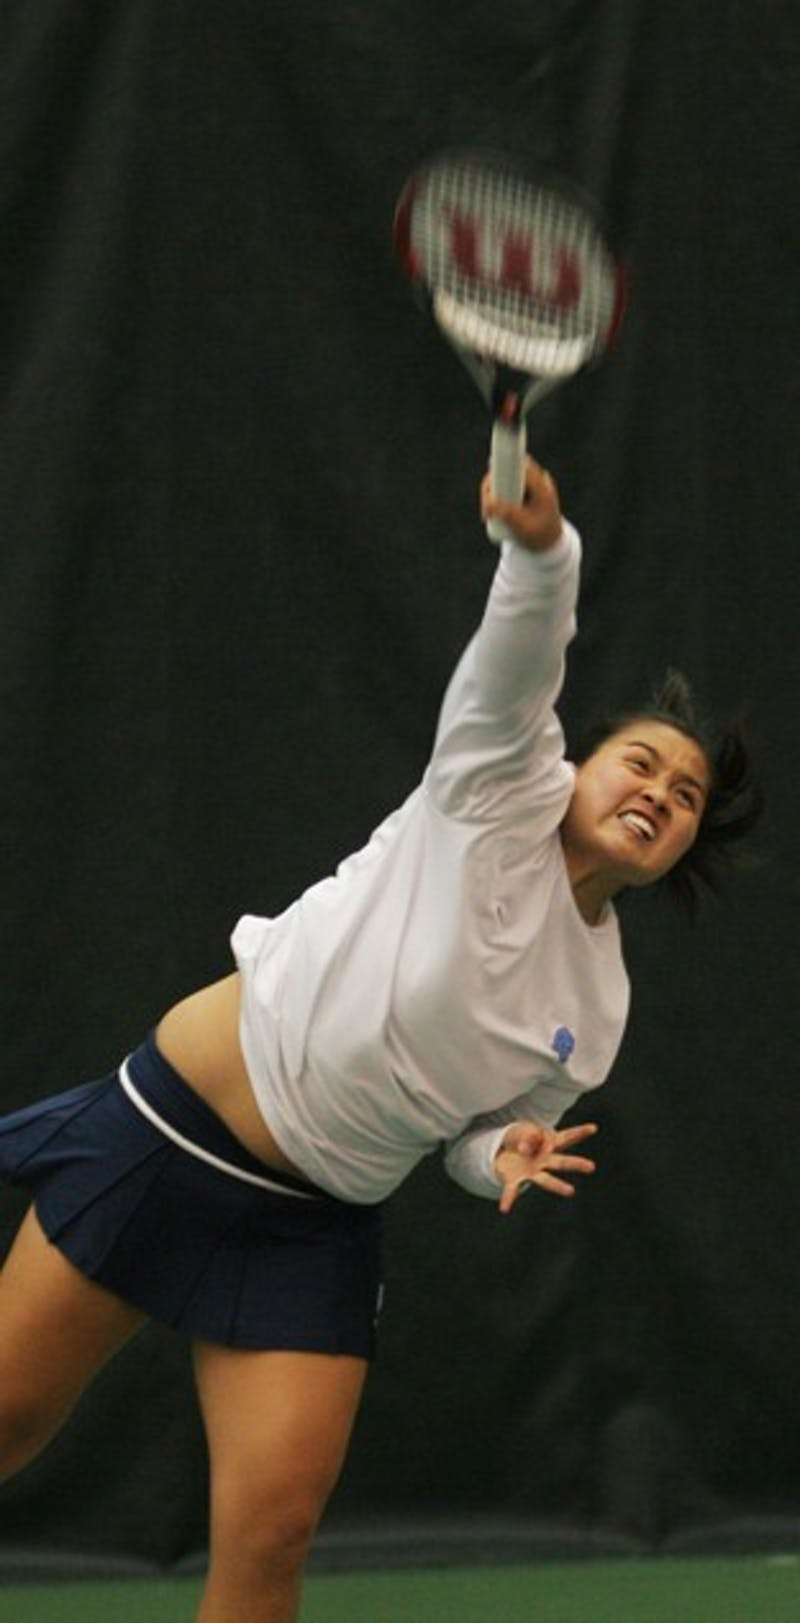 Katrina Tsang came away with a win in her singles match against N.C. State. DTH/Andrew Dunn